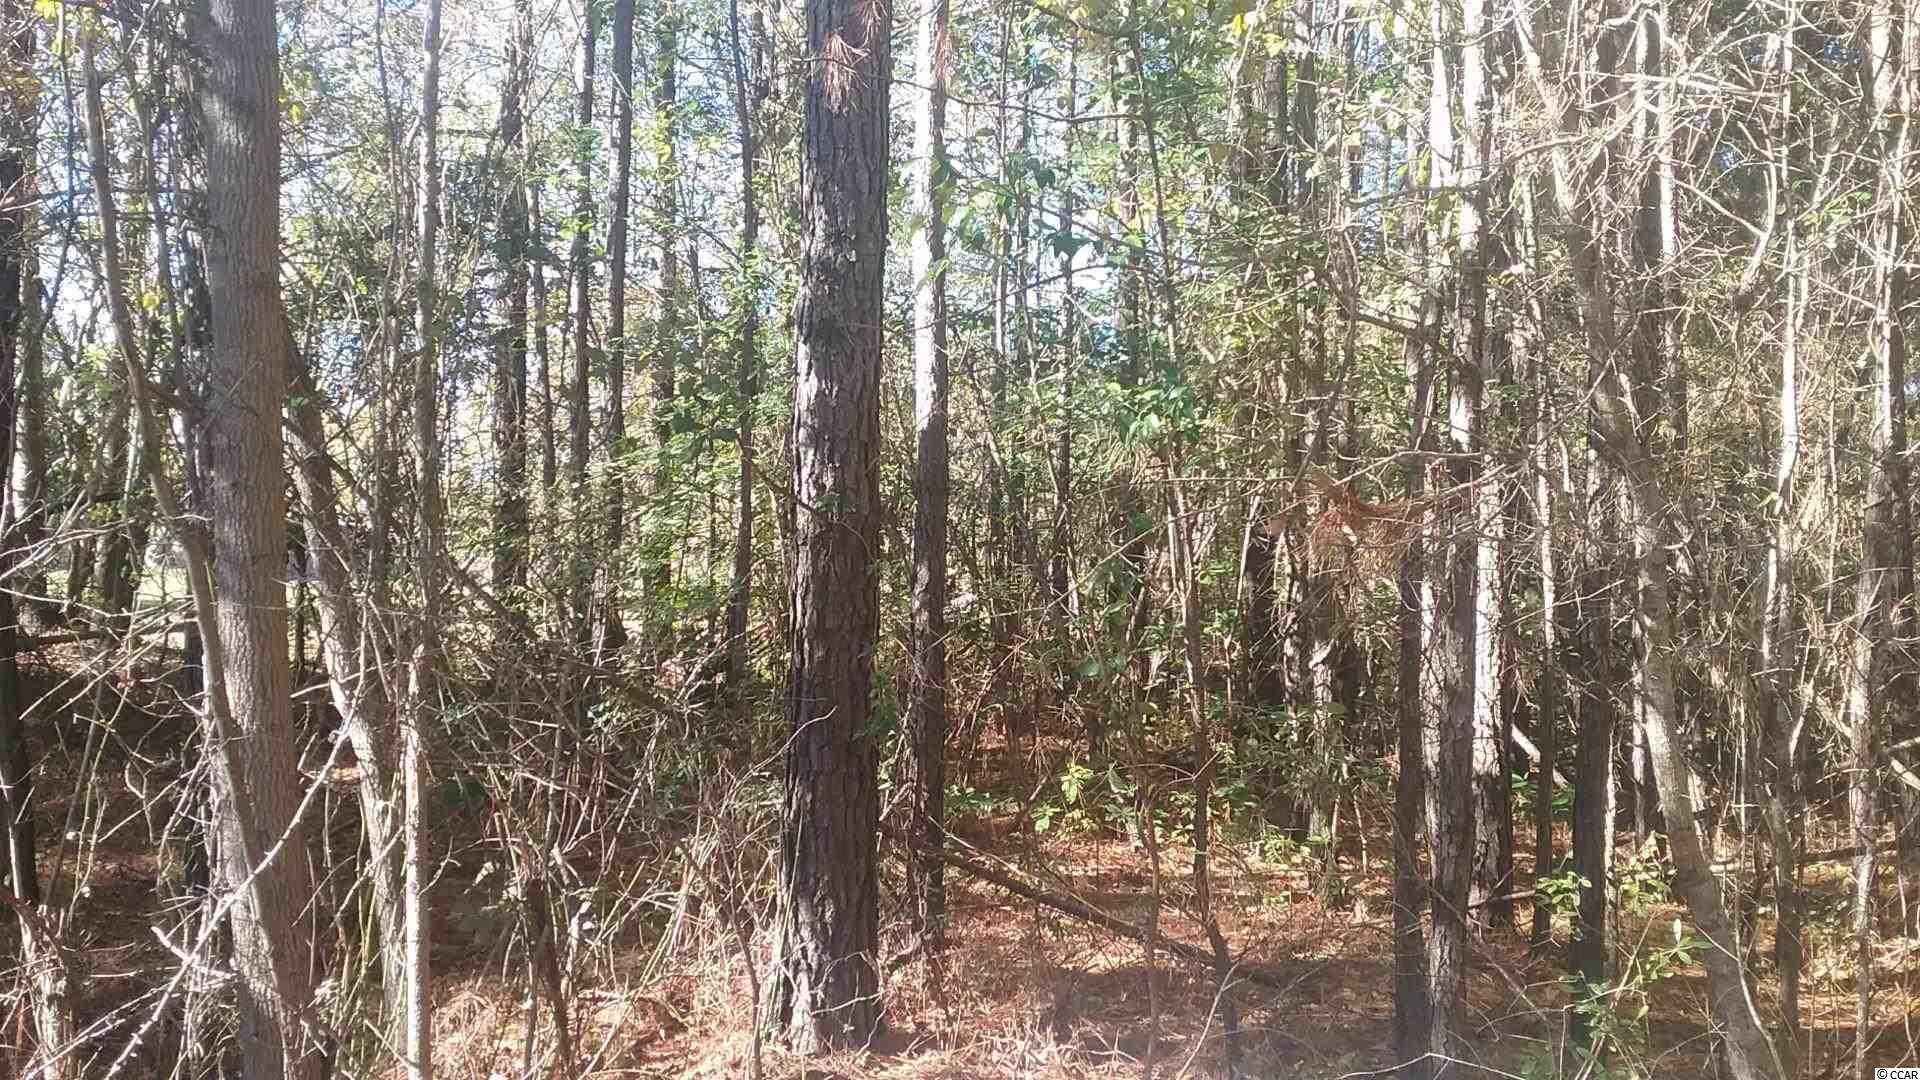 Approximately three acres of land outside of city limits.